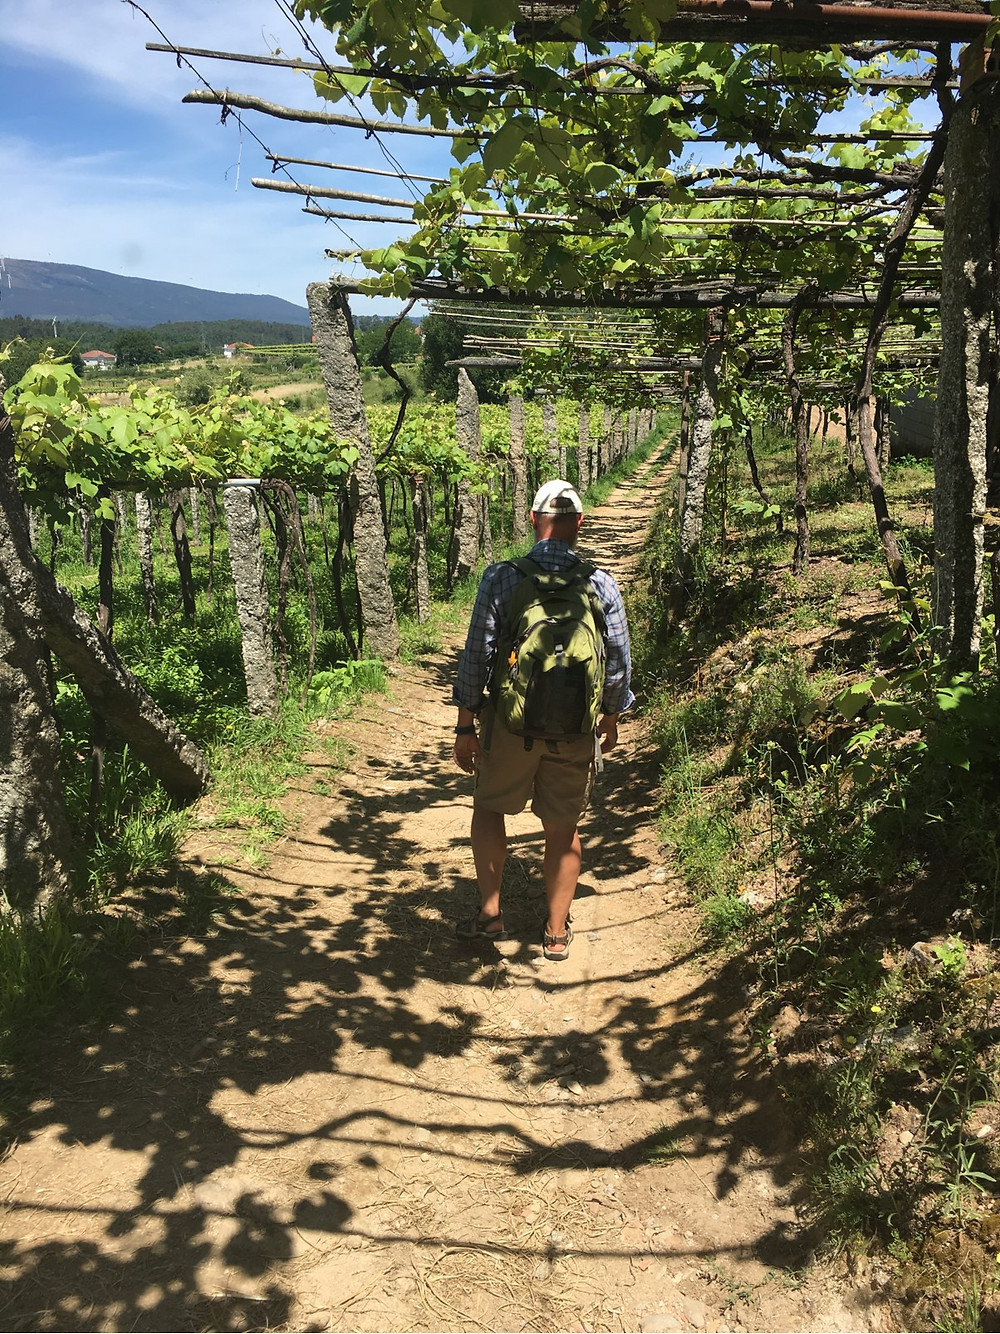 On the Portuguese Camino you hike through vineyards